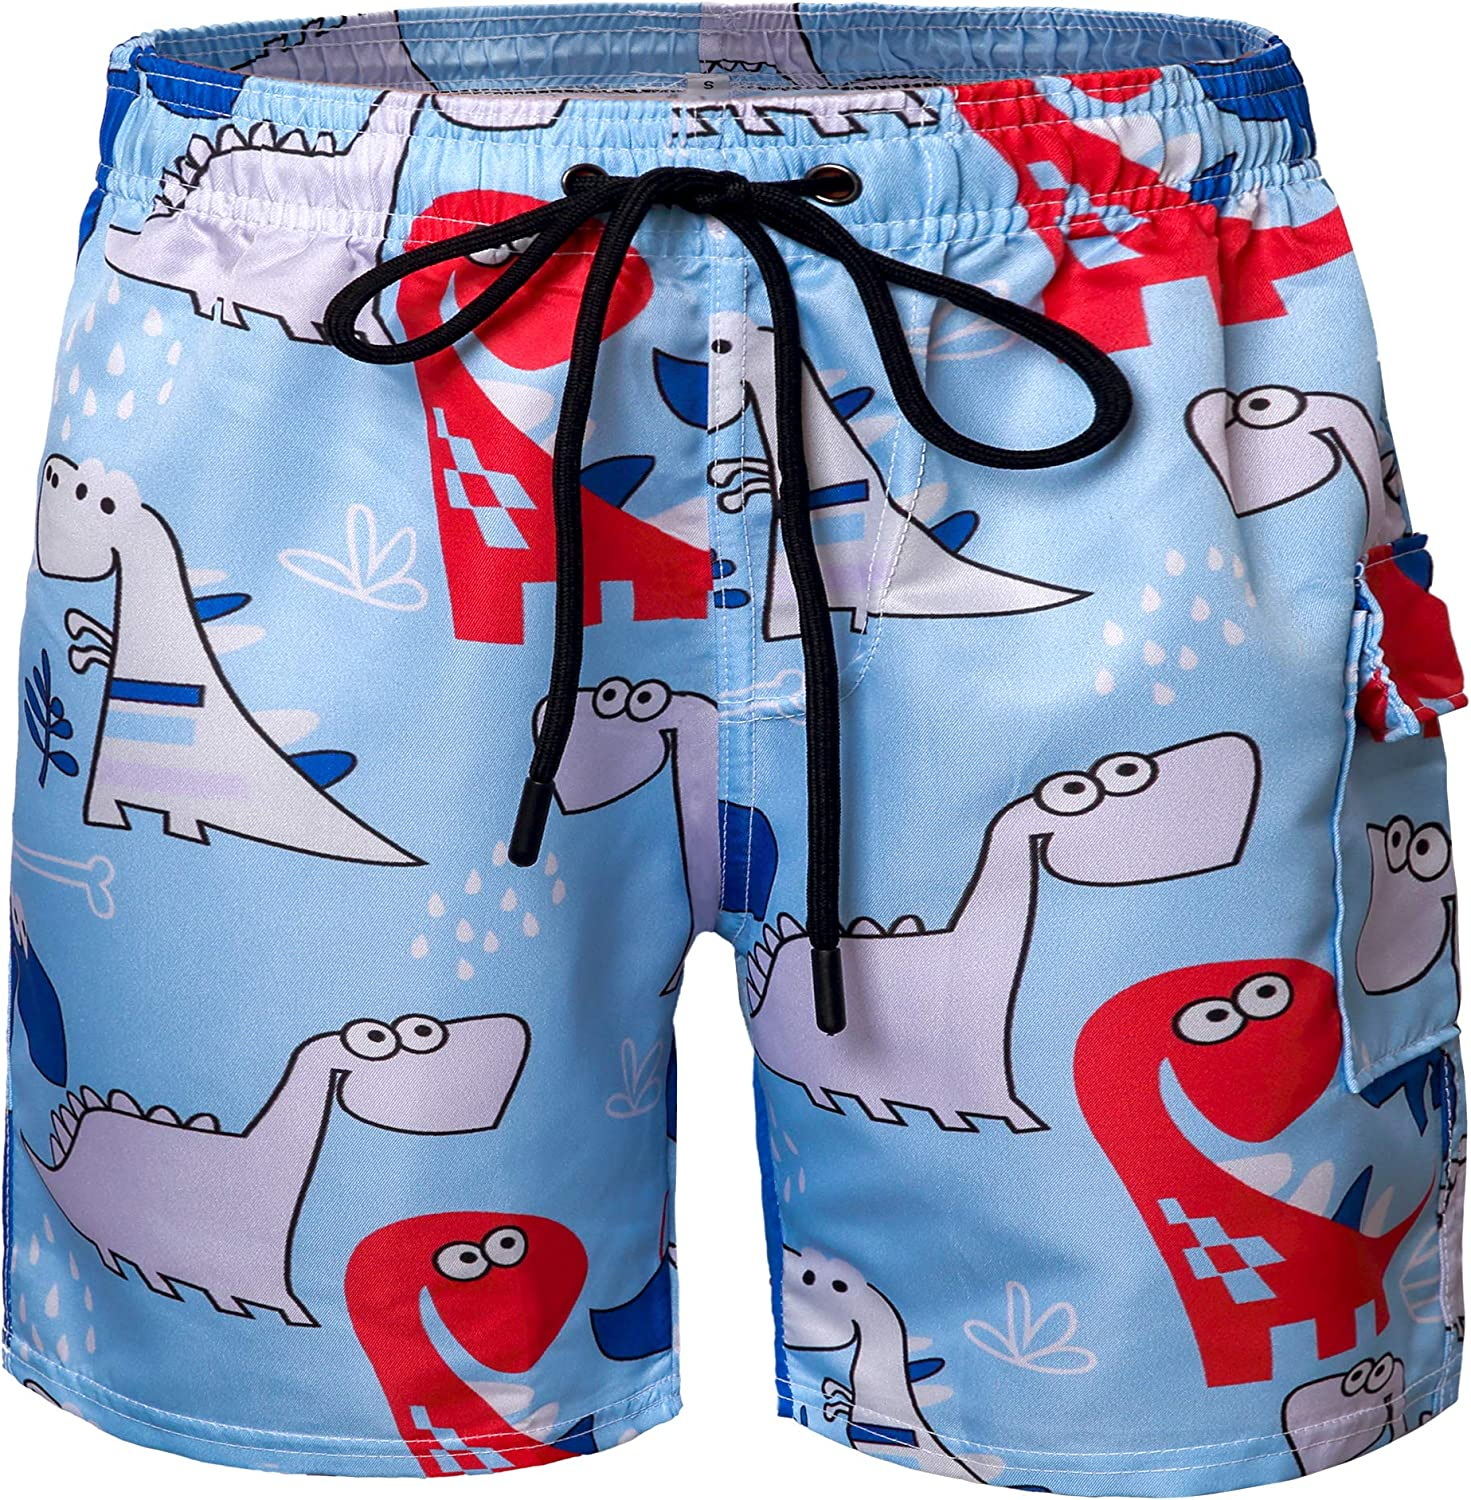 Boys Swim Trunks Funny 3D National uniform Special price for a limited time free shipping Shorts Kids Board Novelty Beach